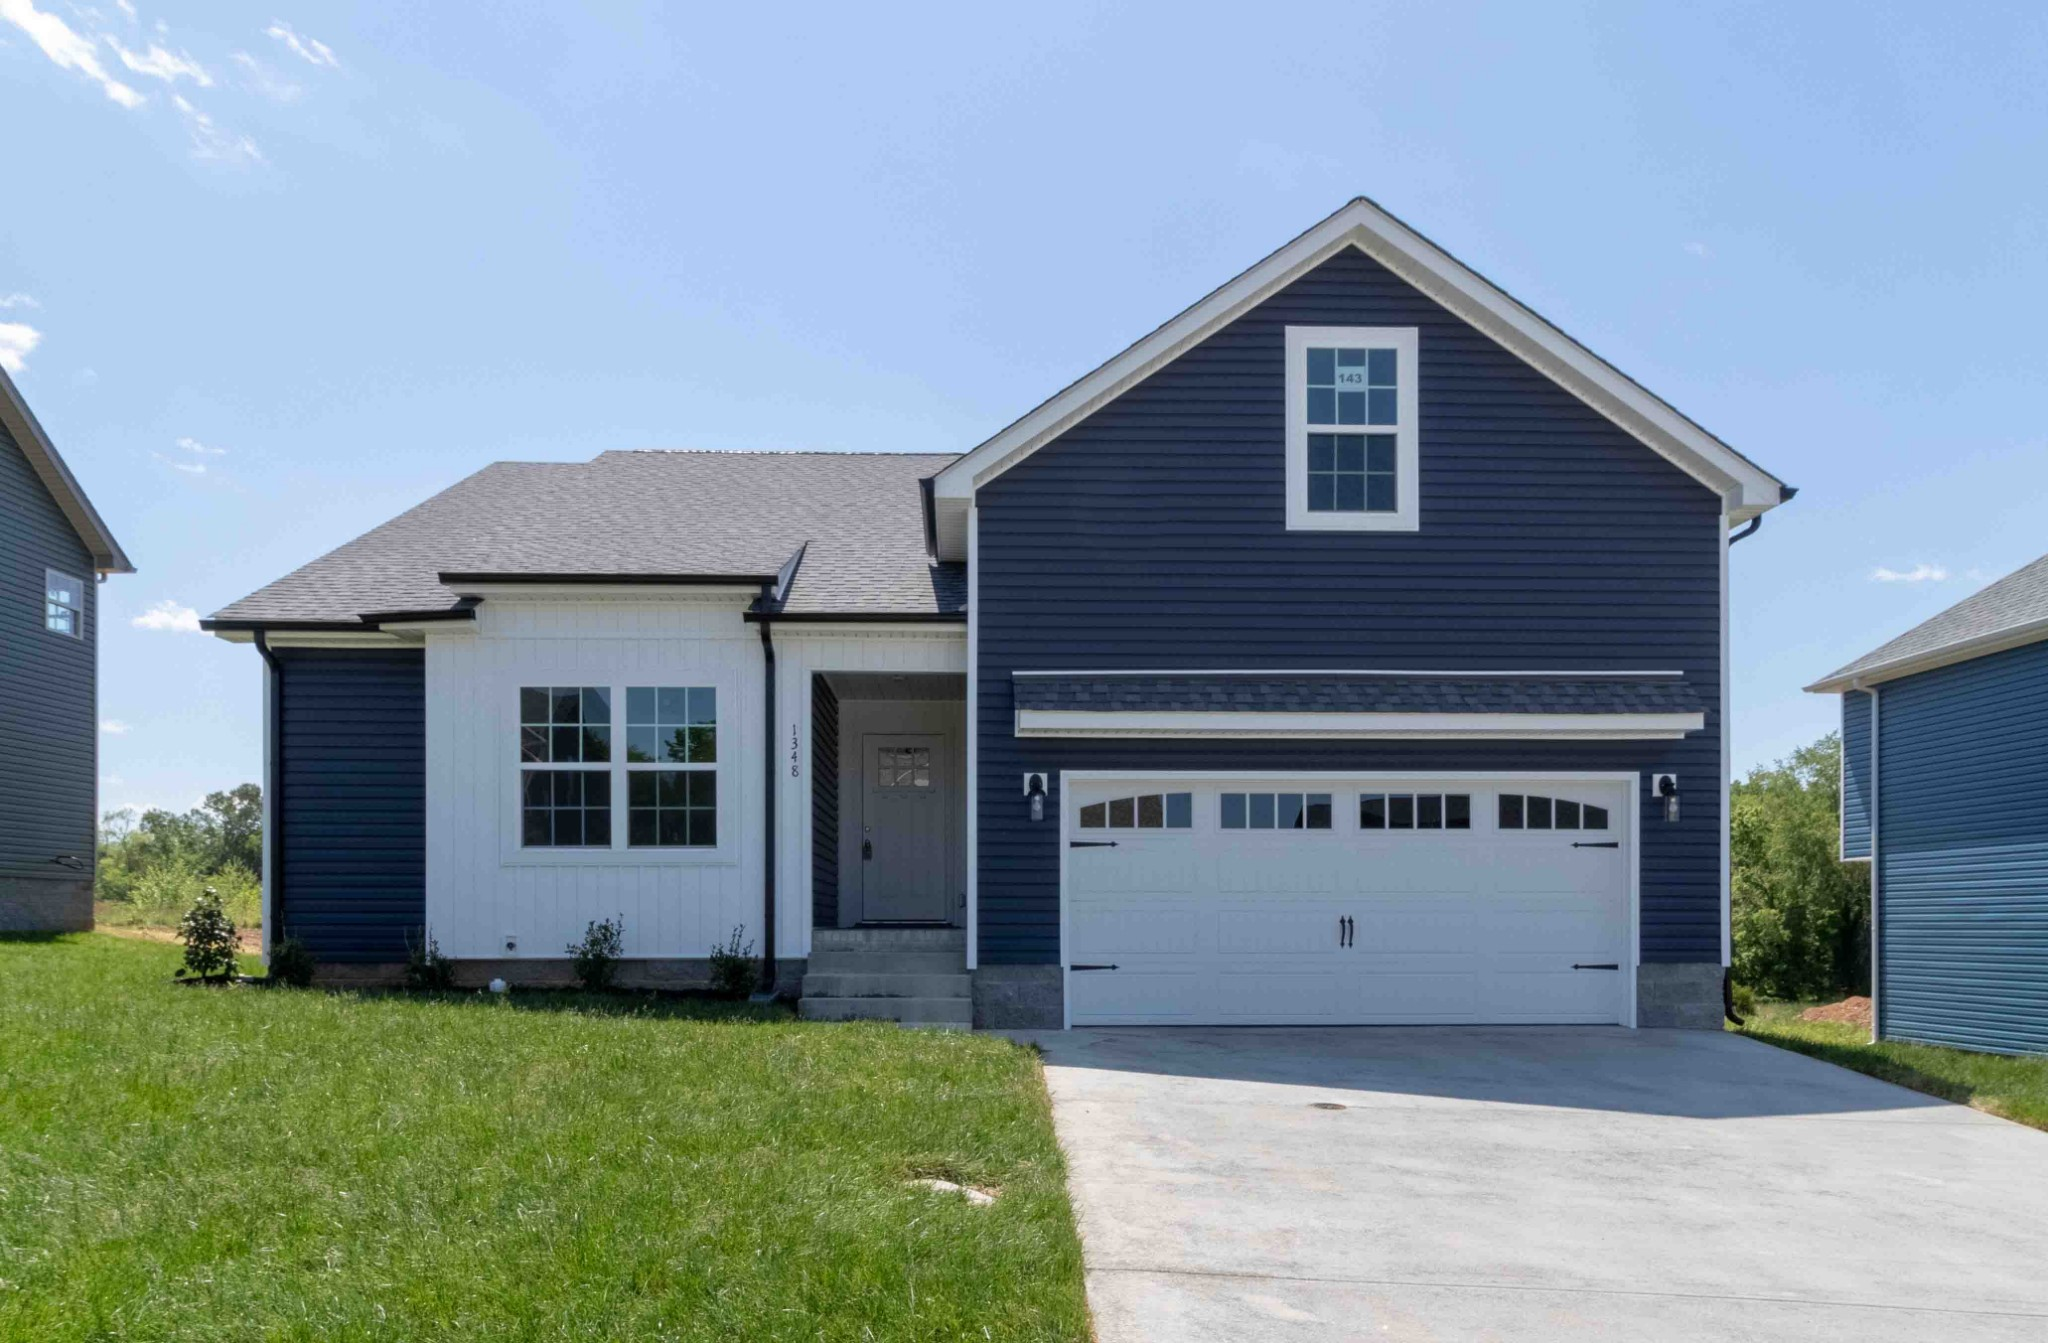 1348 Sussex Dr Property Photo - Clarksville, TN real estate listing